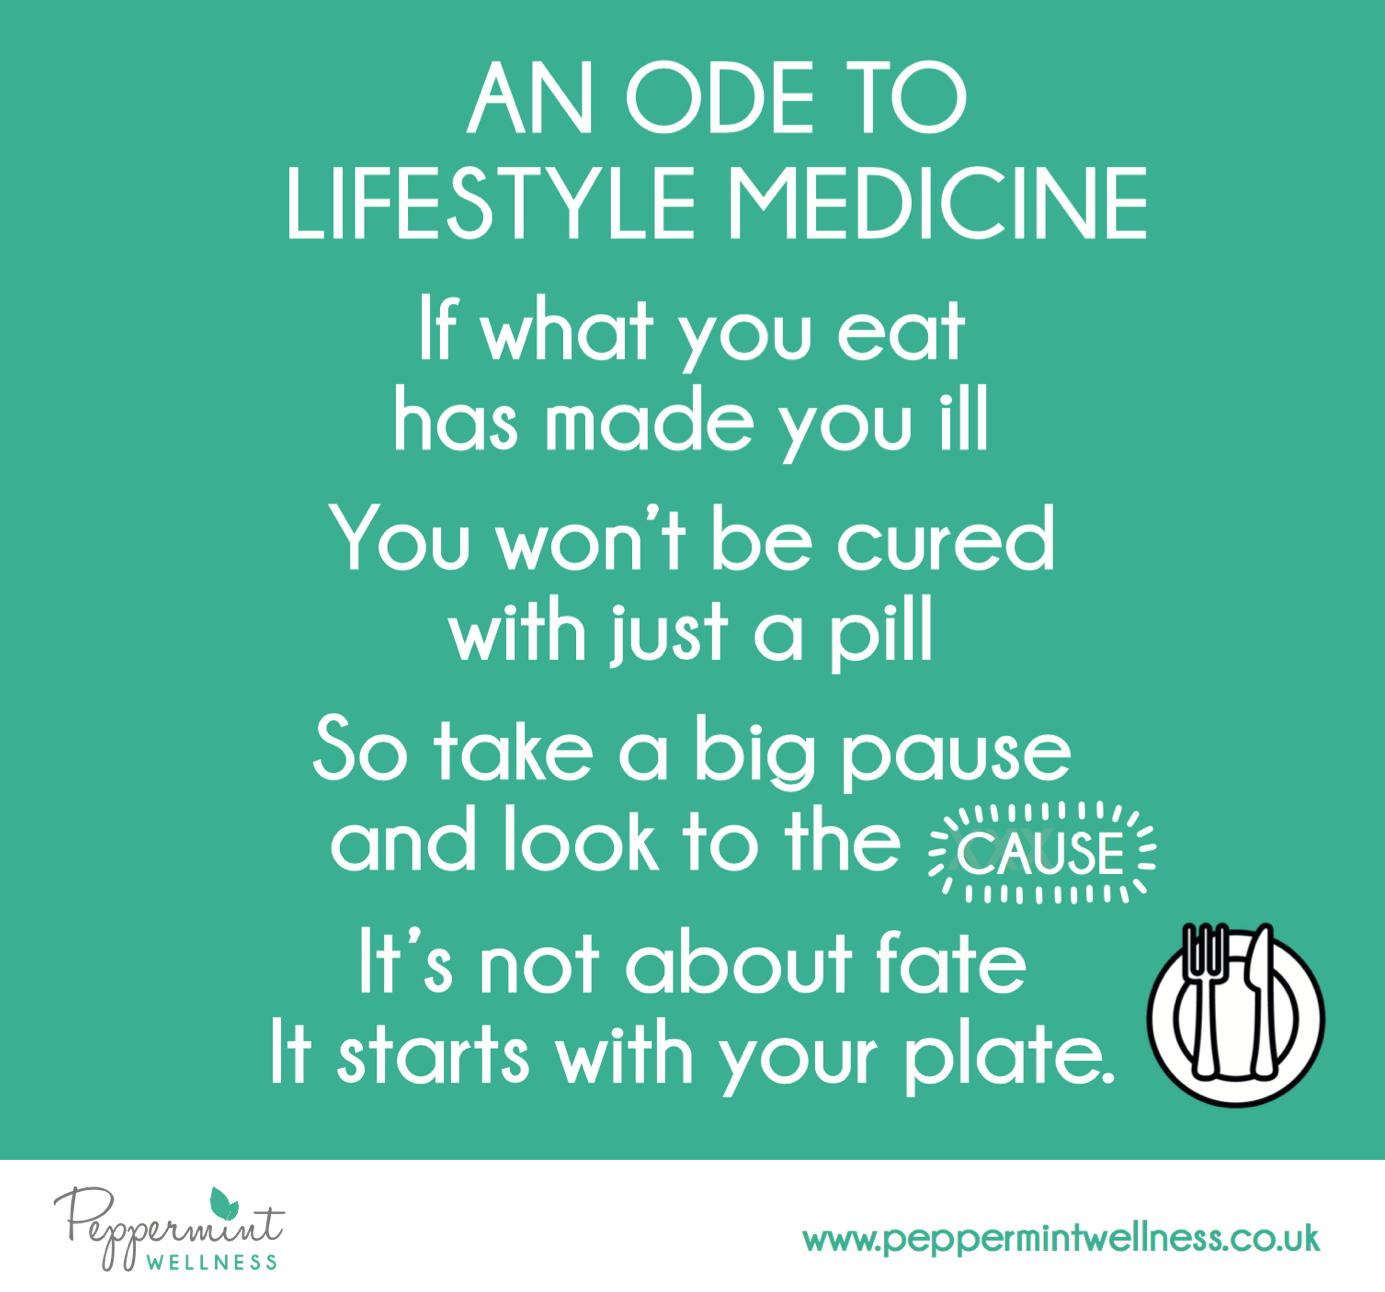 An Ode to Lifestyle Medicine